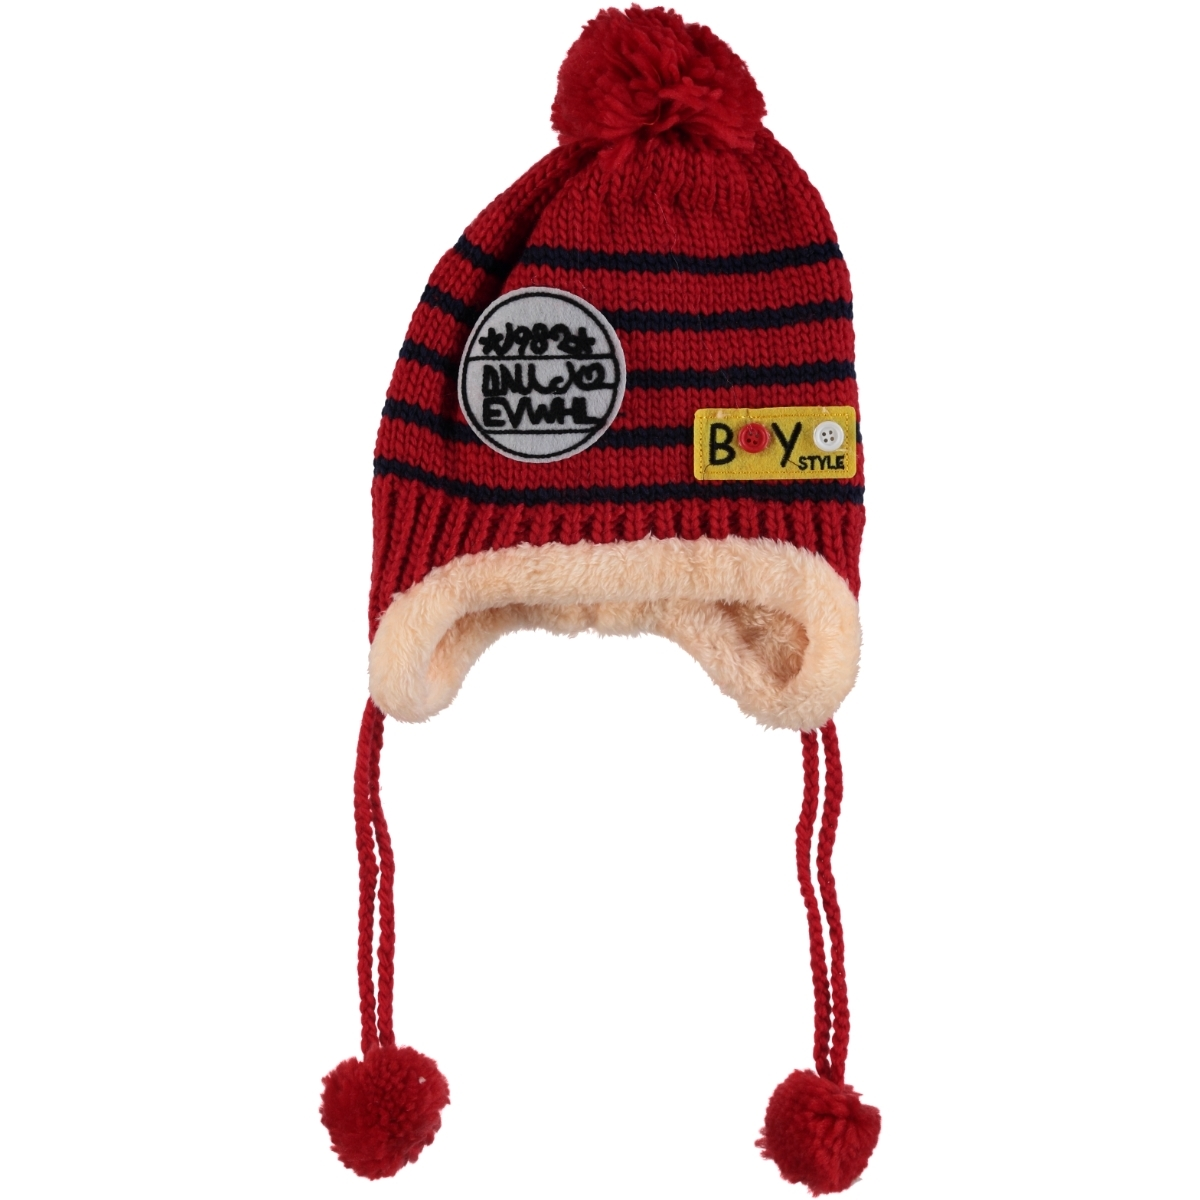 Prahar Red Beanie Boy 8-12 Years